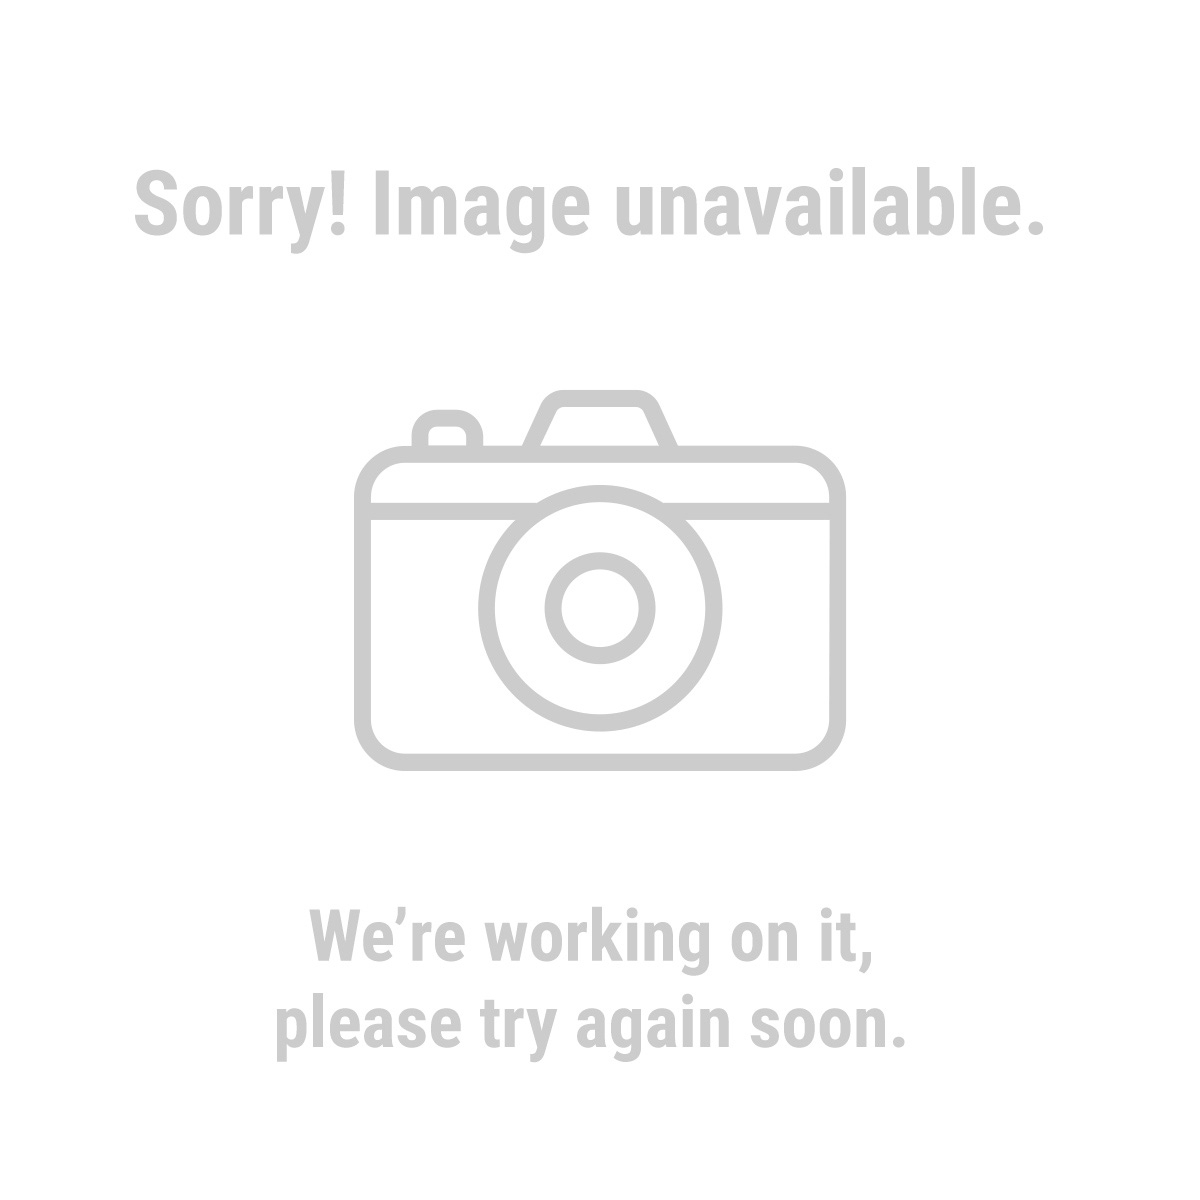 Haul-Master 65943 30A Male to 15A Female RV Pigtail Power Adapter